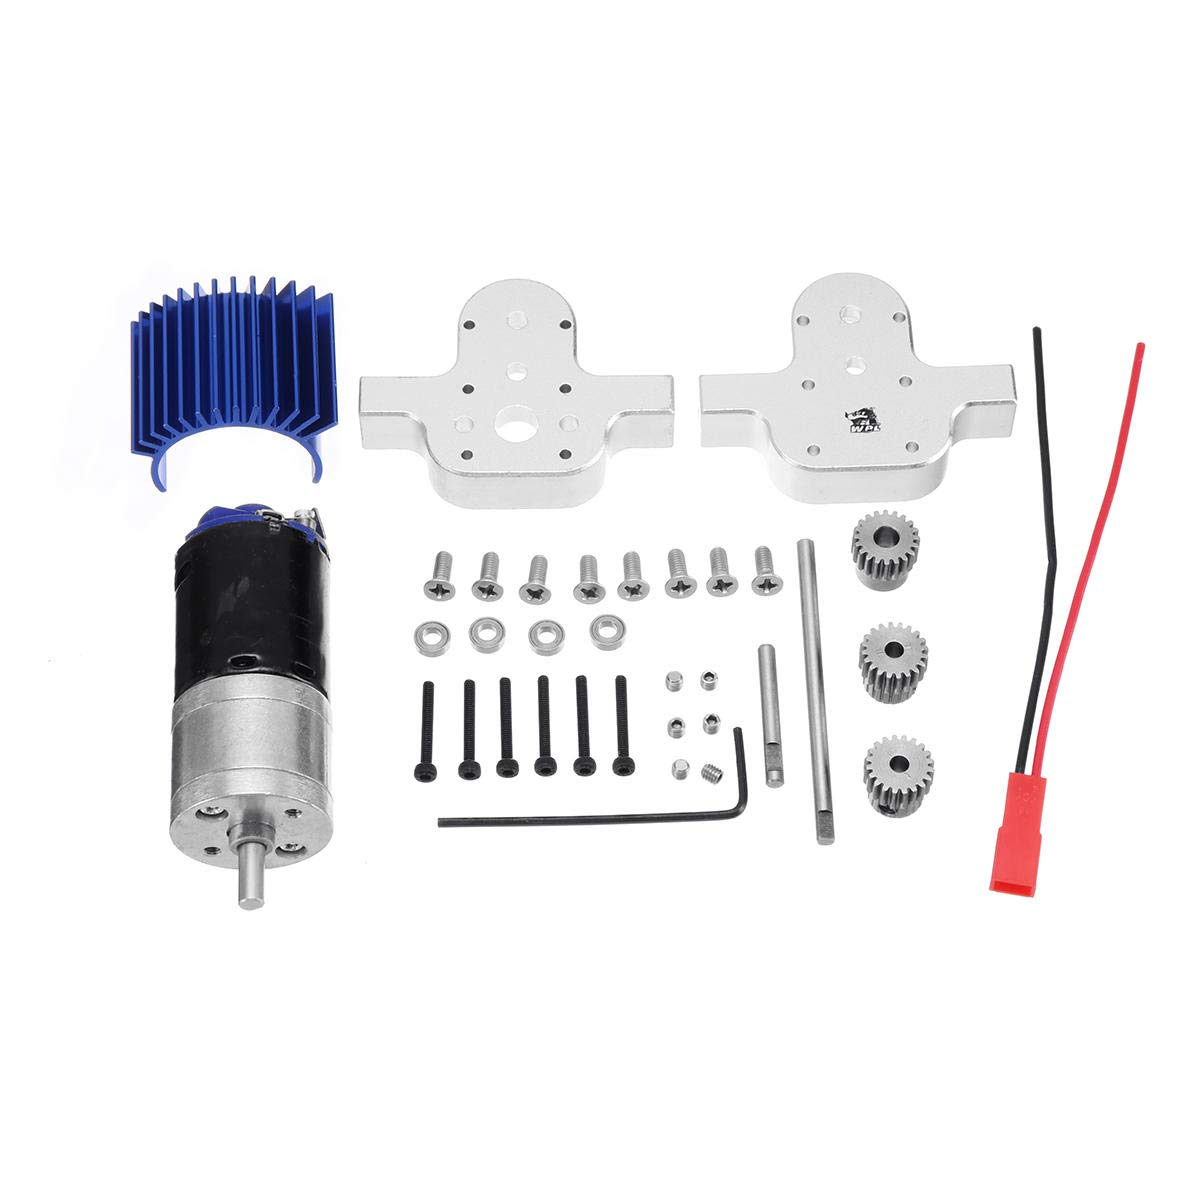 BeesClover Metal Transfer Gearbox 370 Motor for WPL B-24 B16 B36 C24 1/16 4WD 6WD RC Car Case Silver Metal Transfer case with 370 Motor